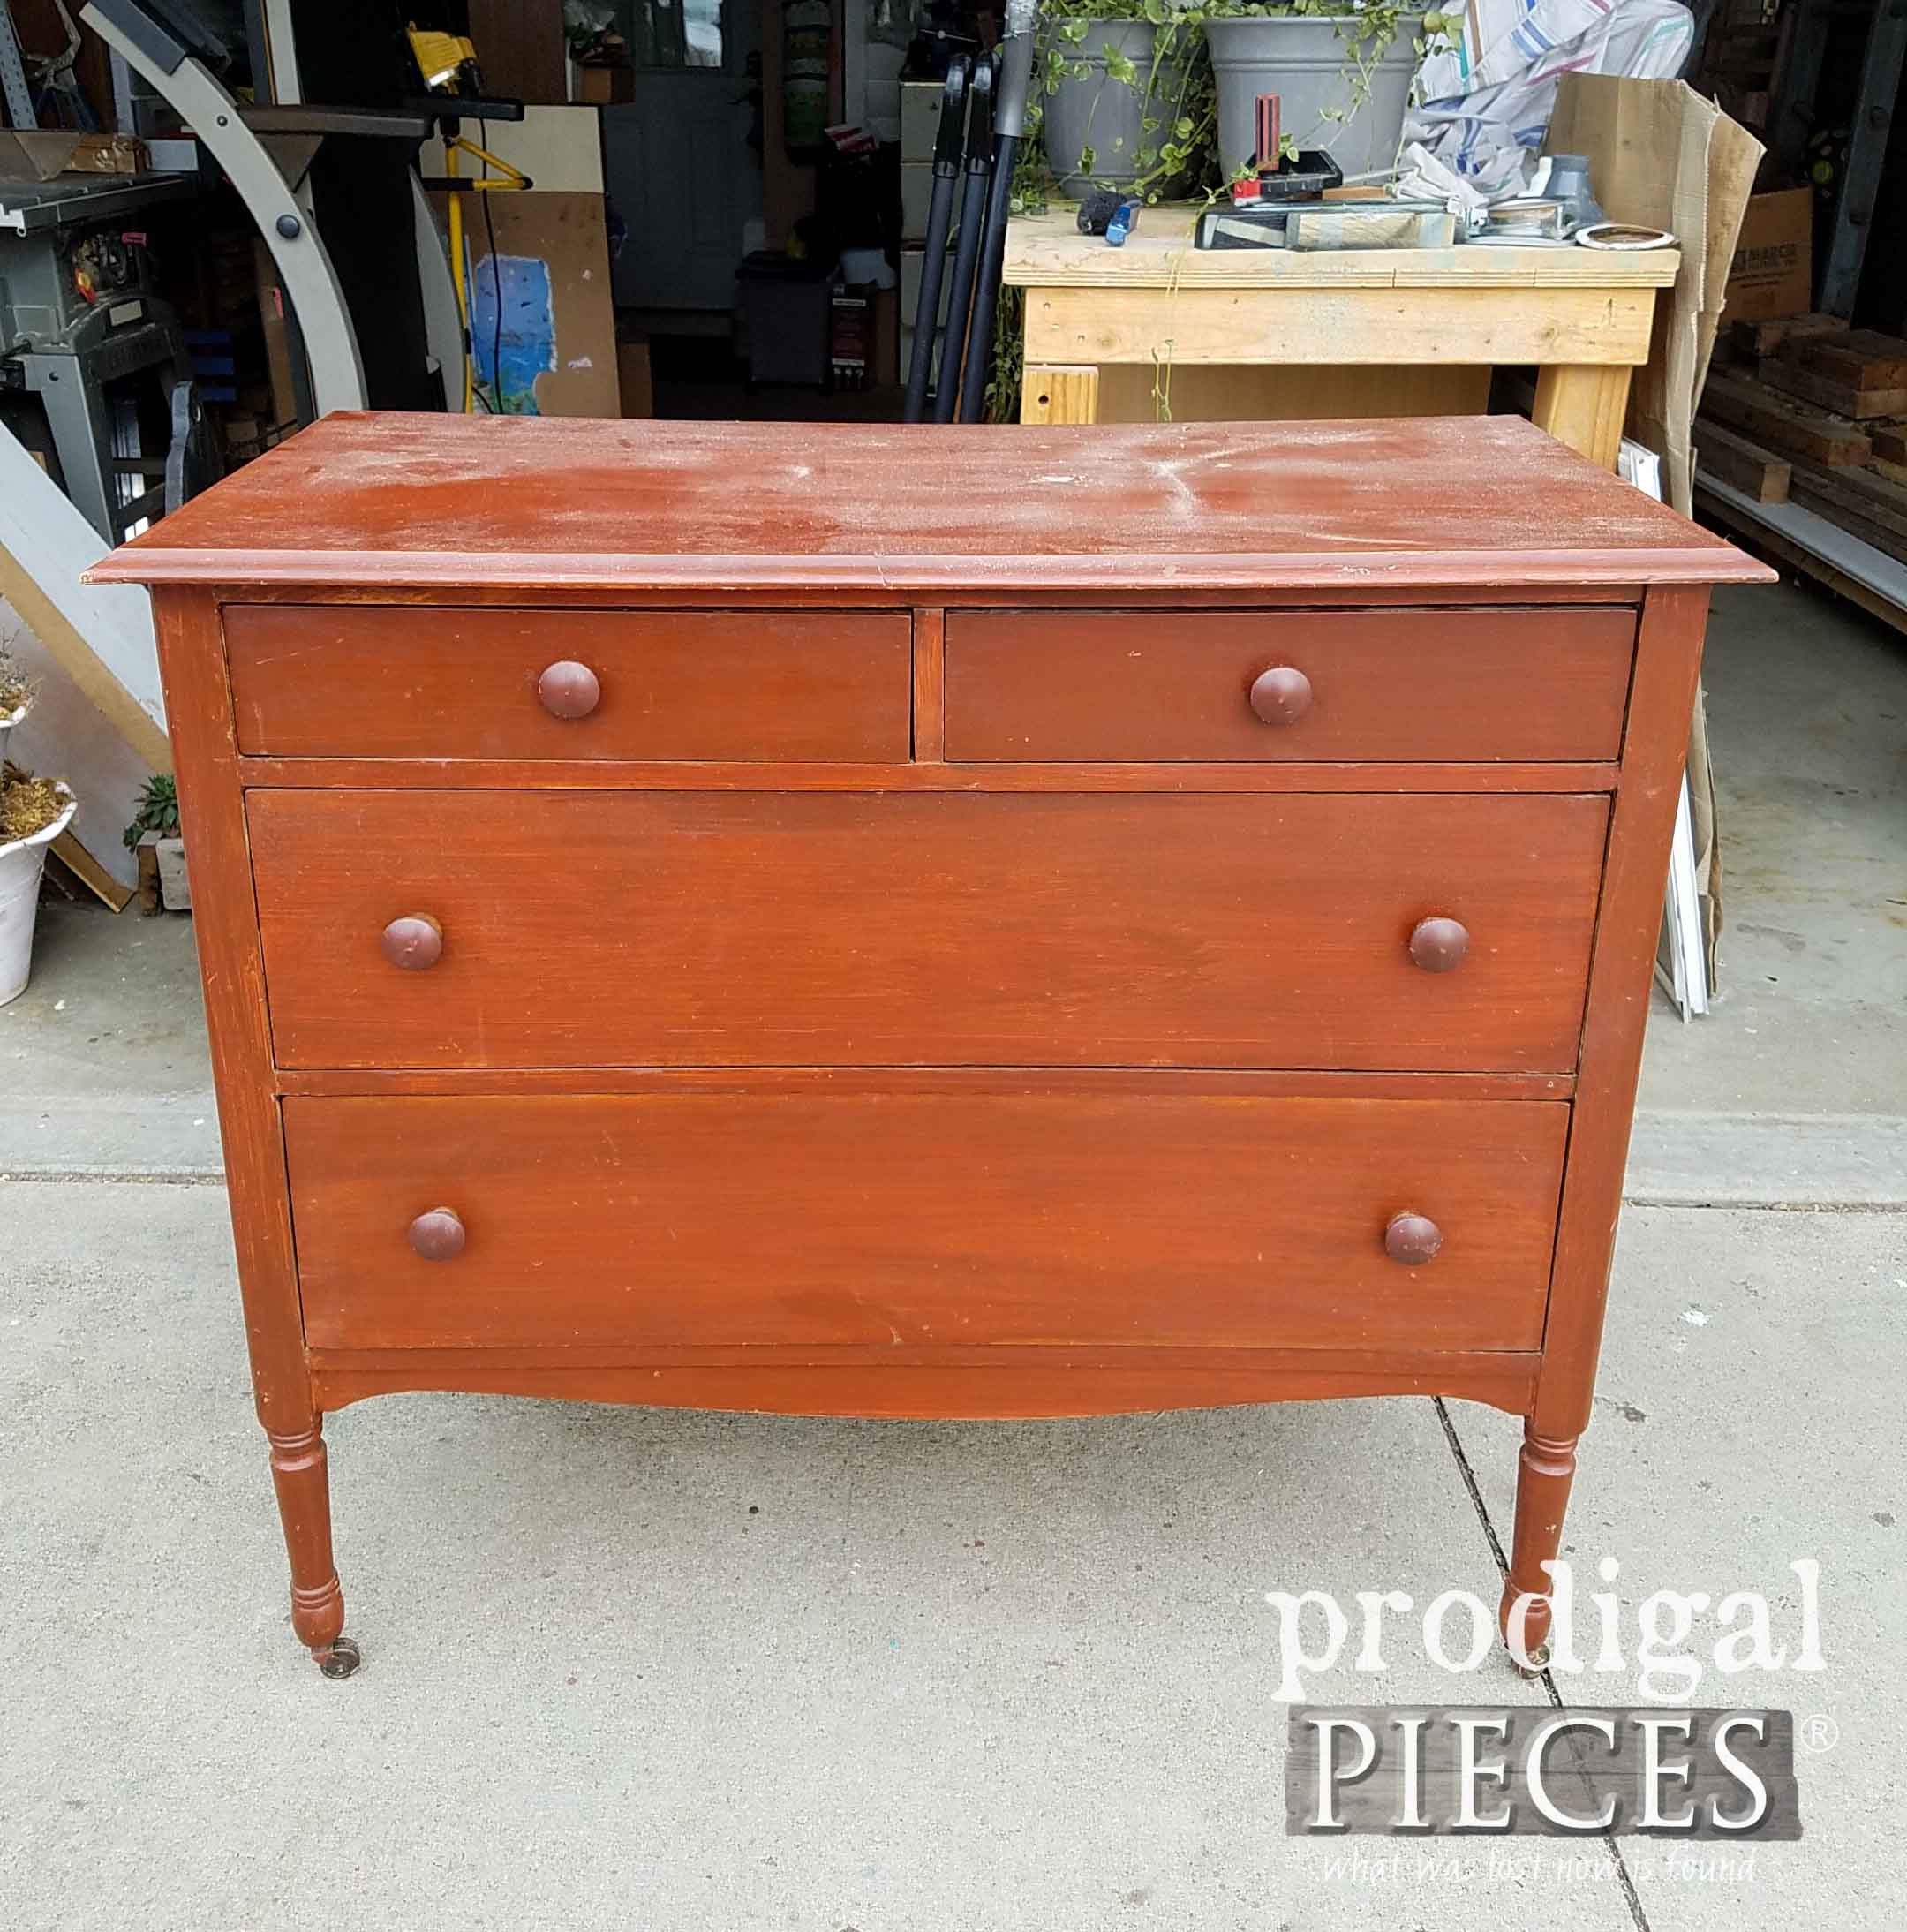 Vintage Chest Before Makeover by Prodigal Pieces | prodigalpieces.com